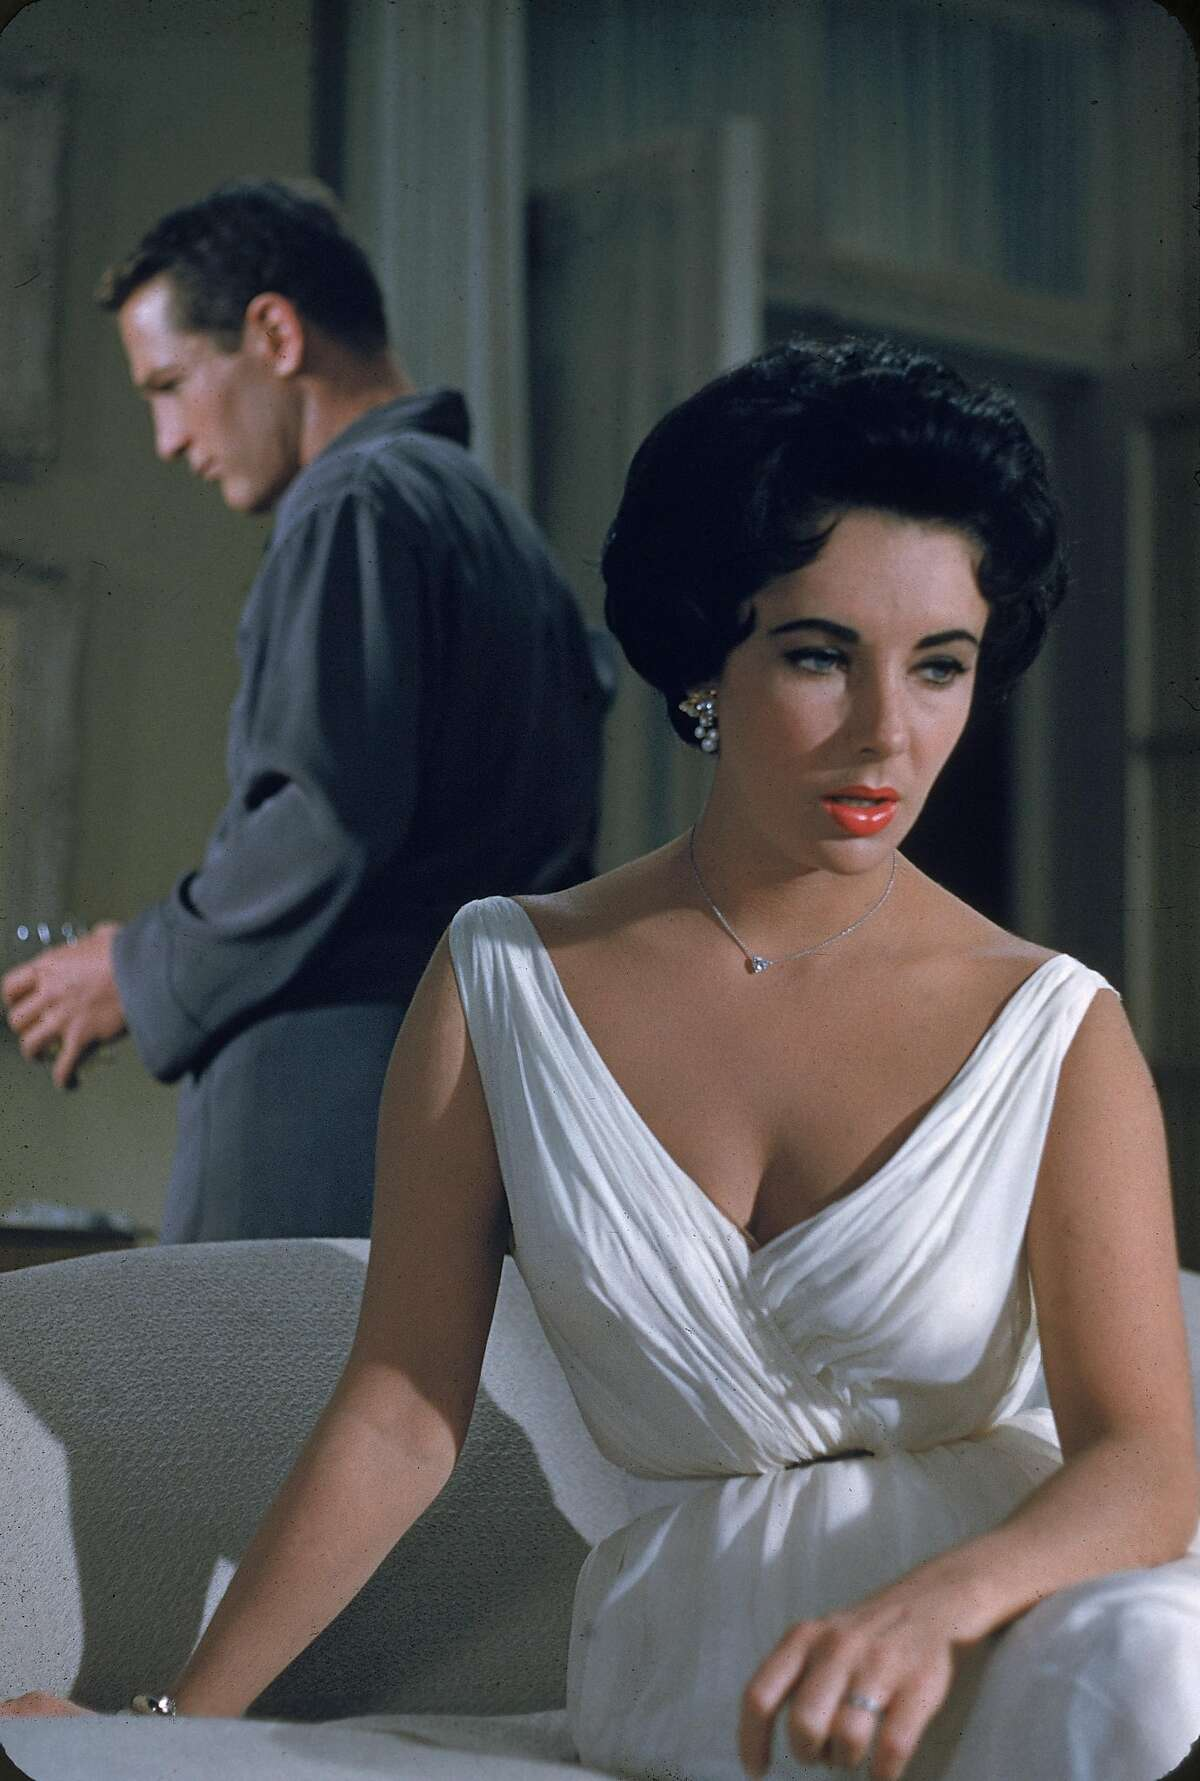 American actor Paul Newman and British-born actor Elizabeth Taylor have a conversation in a still from the film, 'Cat On A Hot Tin Roof', directed by Richard Brooks, 1958. (Photo by MGM Studios/Courtesy of Getty Images)